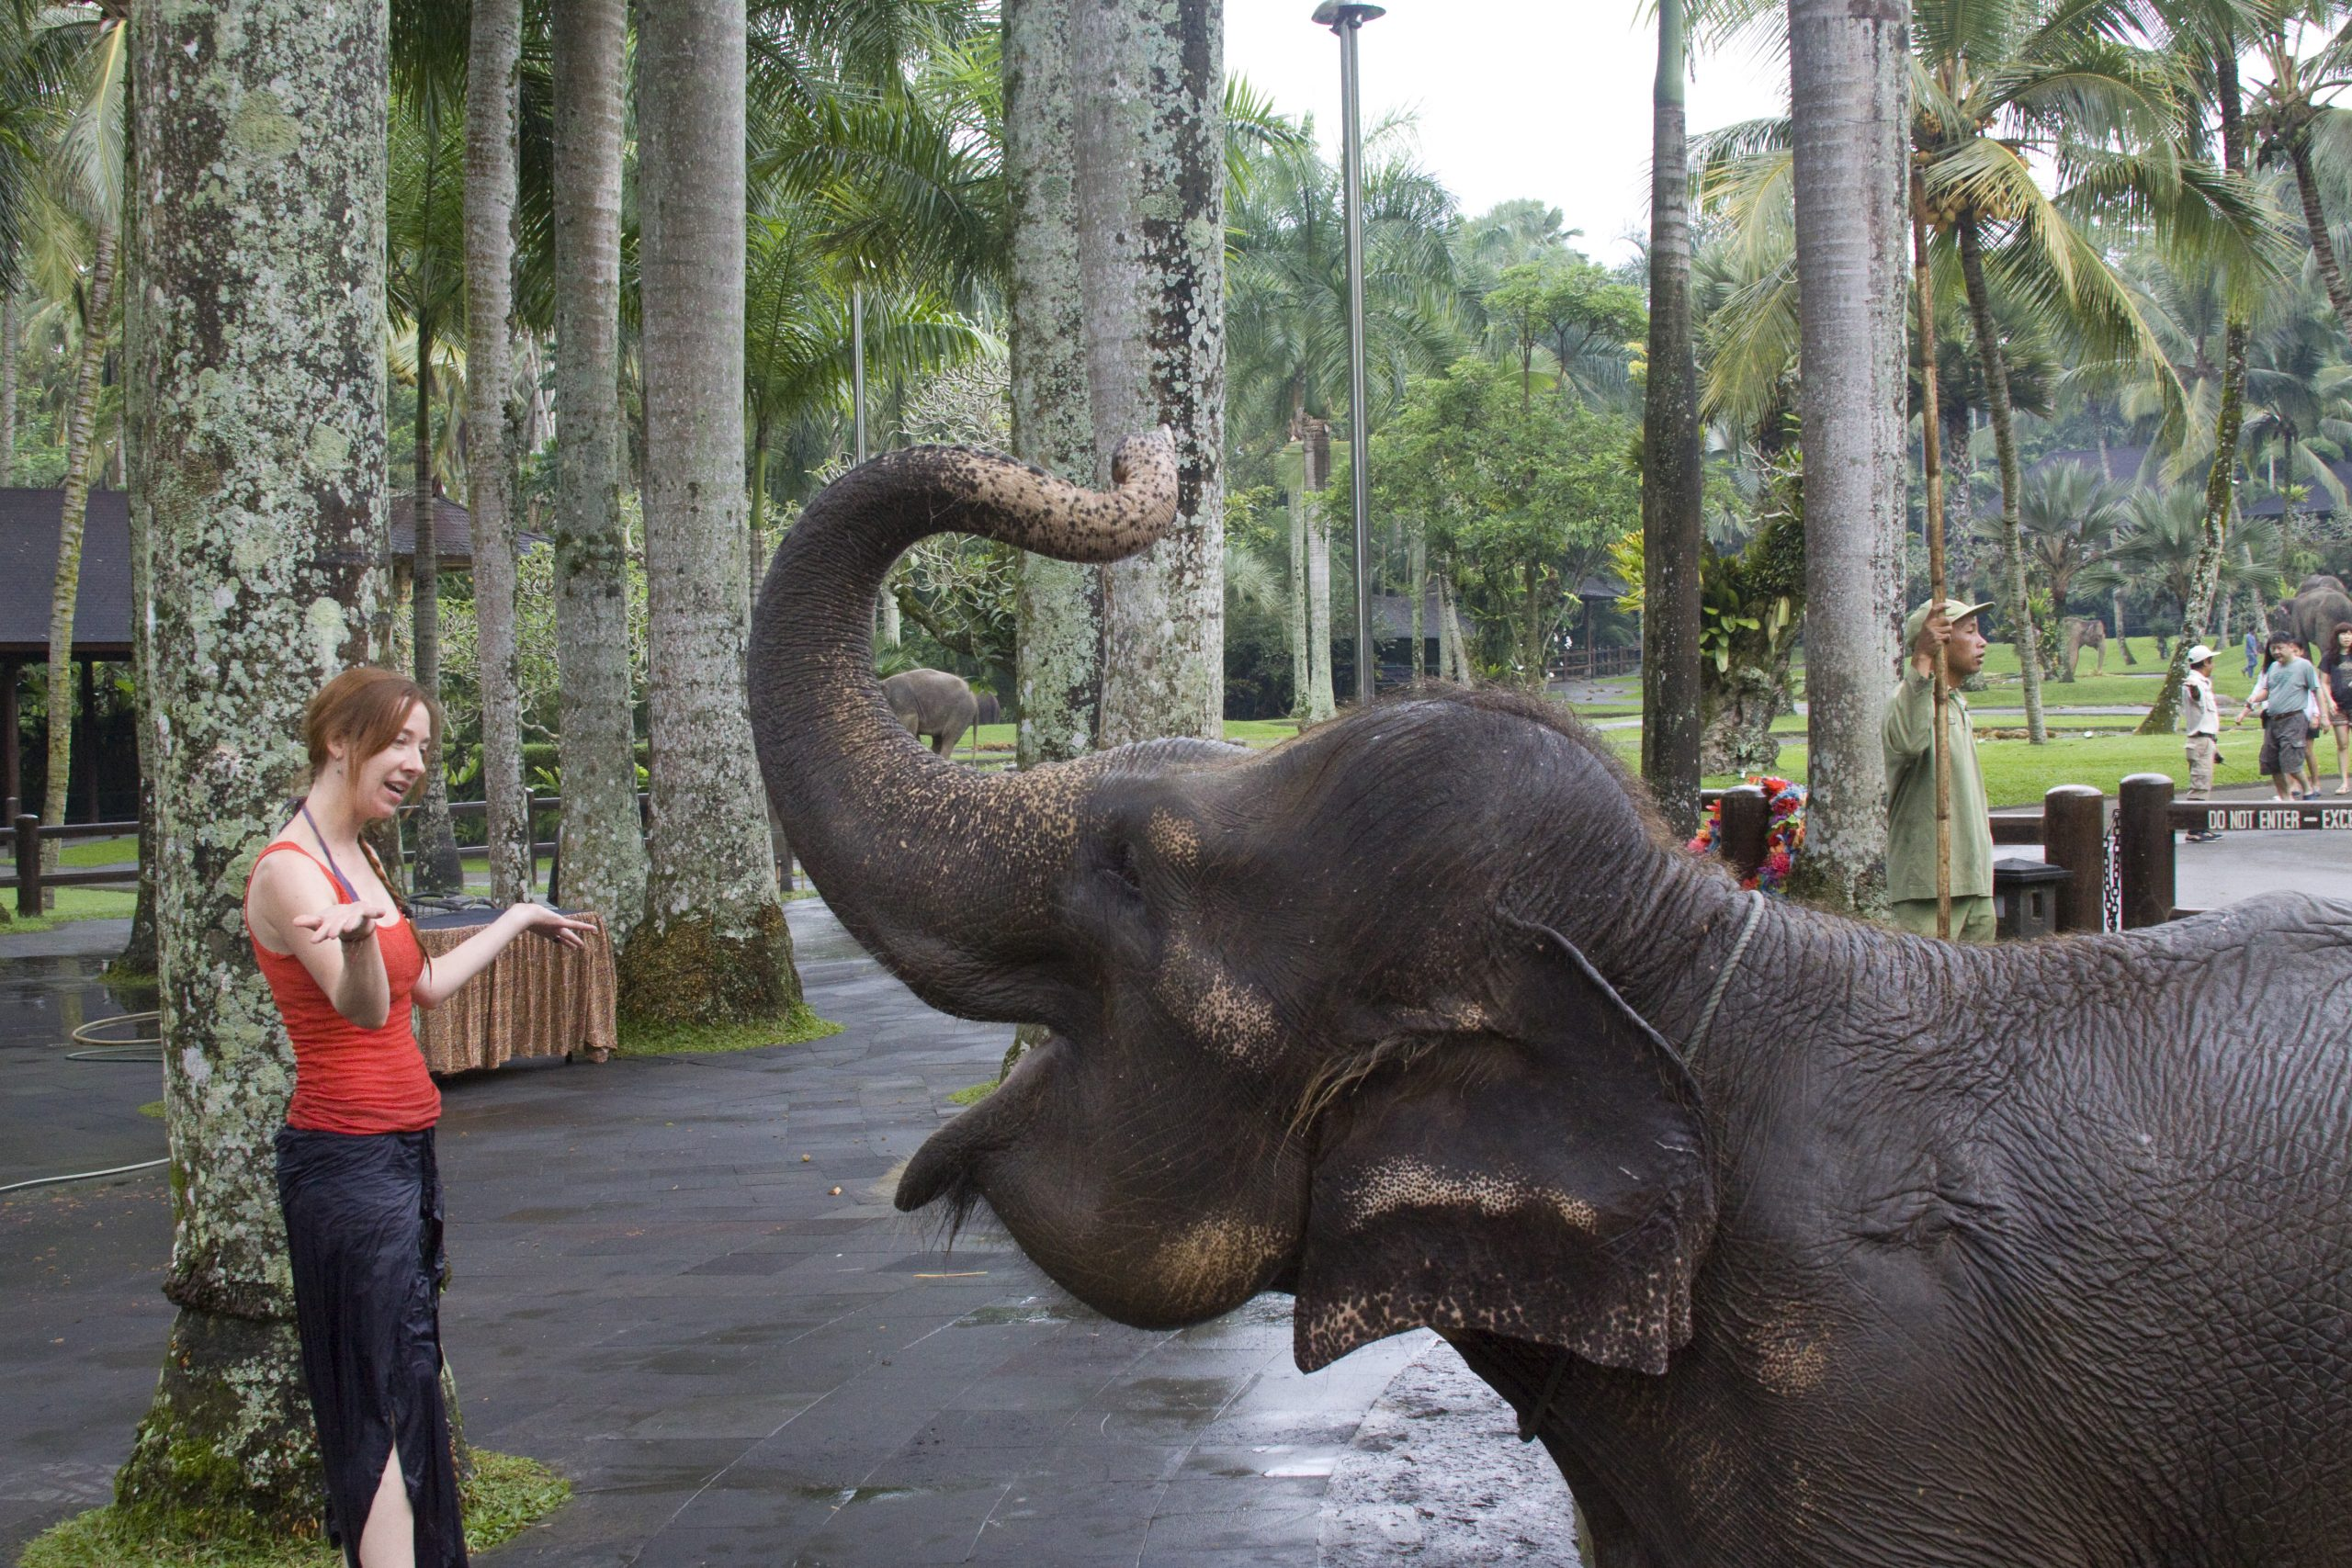 Jill with elephant-trunk up and smiling